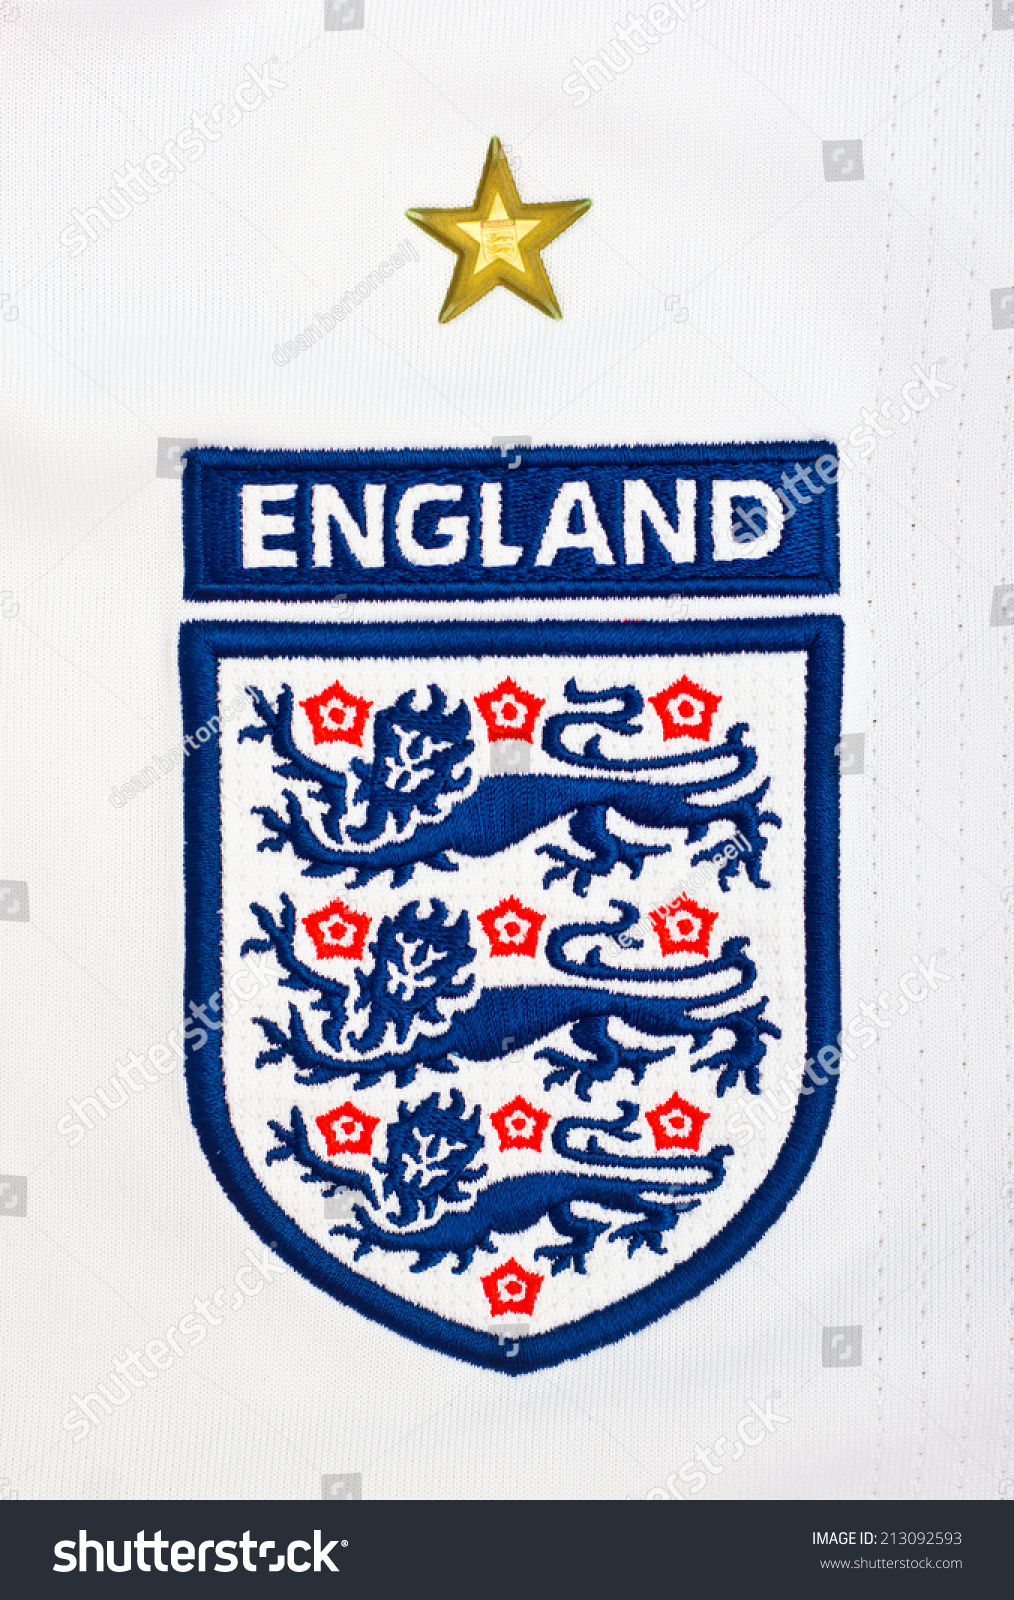 England football team 2014 world cup logo